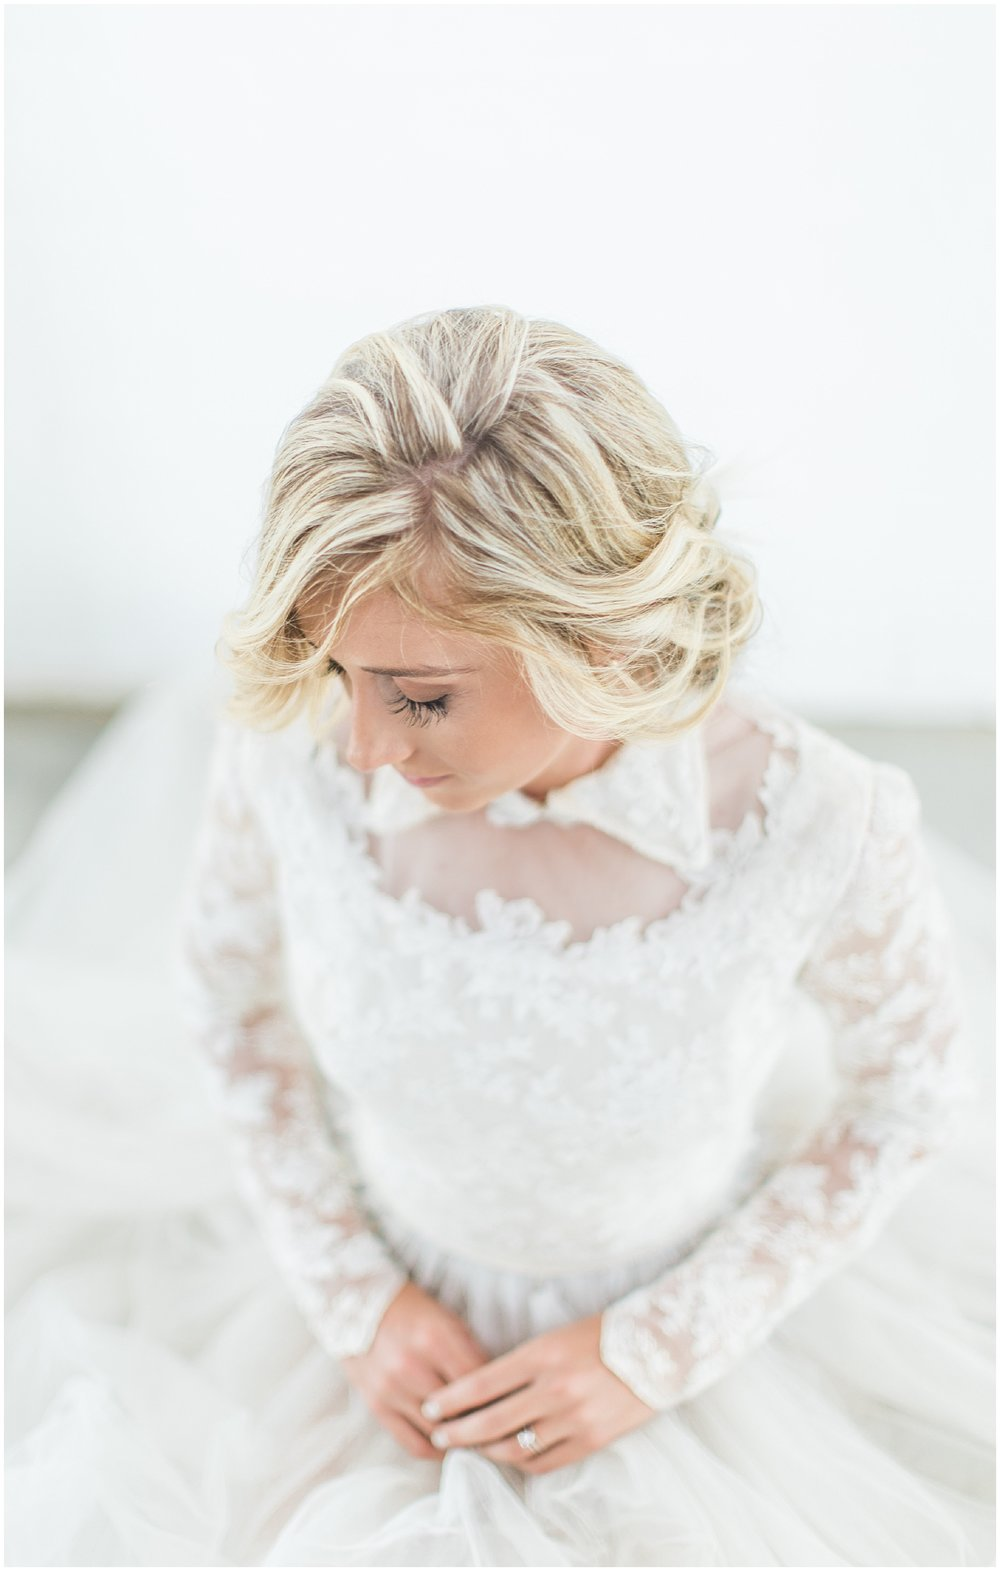 AliciaLandman_JoleneandZander_Wedding_The Pretty Blog_0423.jpg